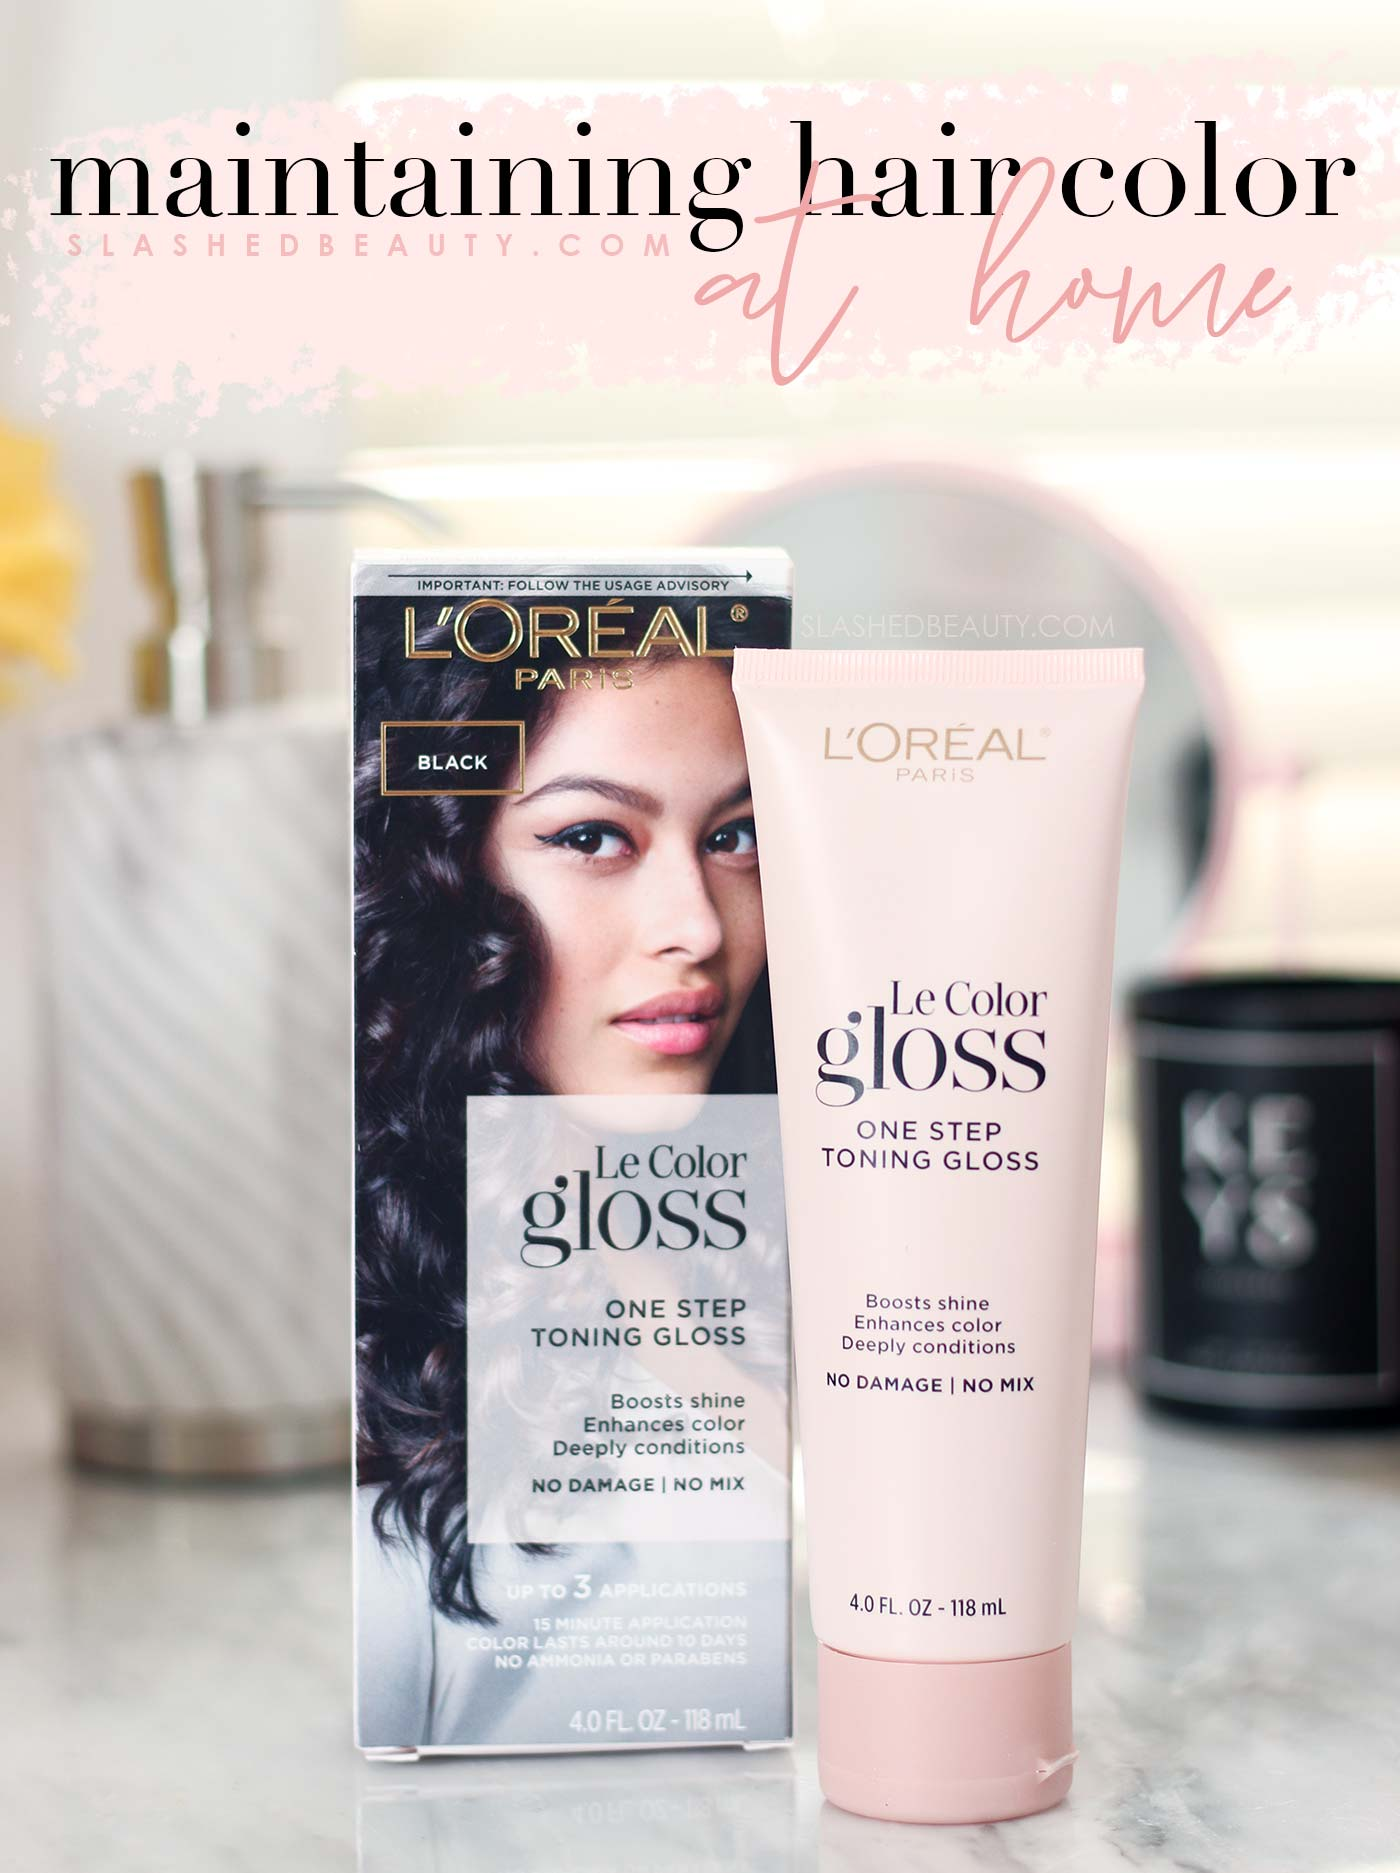 L'Oreal Le Color Gloss Review | How to Maintain Hair Color Longer At Home | Slashed Beauty